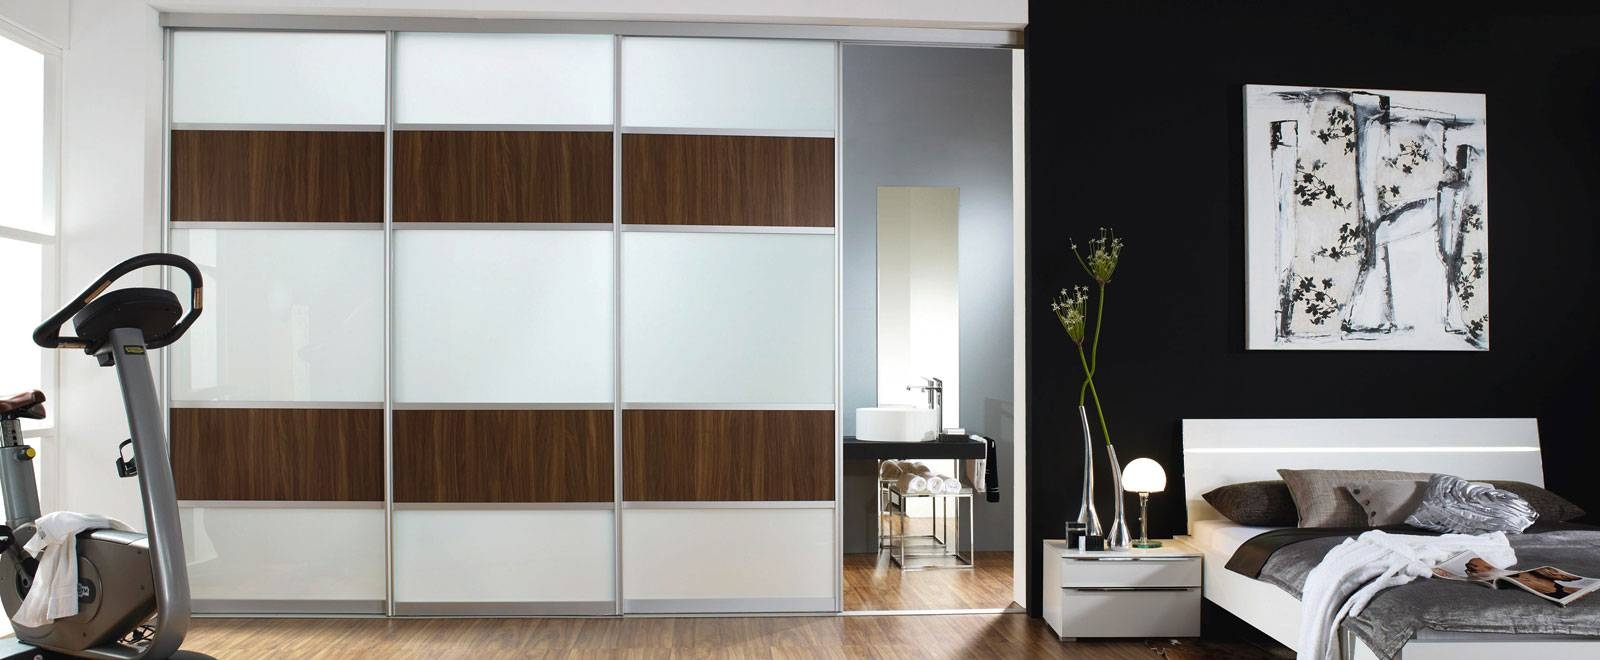 Home Pertaining To Rauch Wardrobes (View 7 of 15)